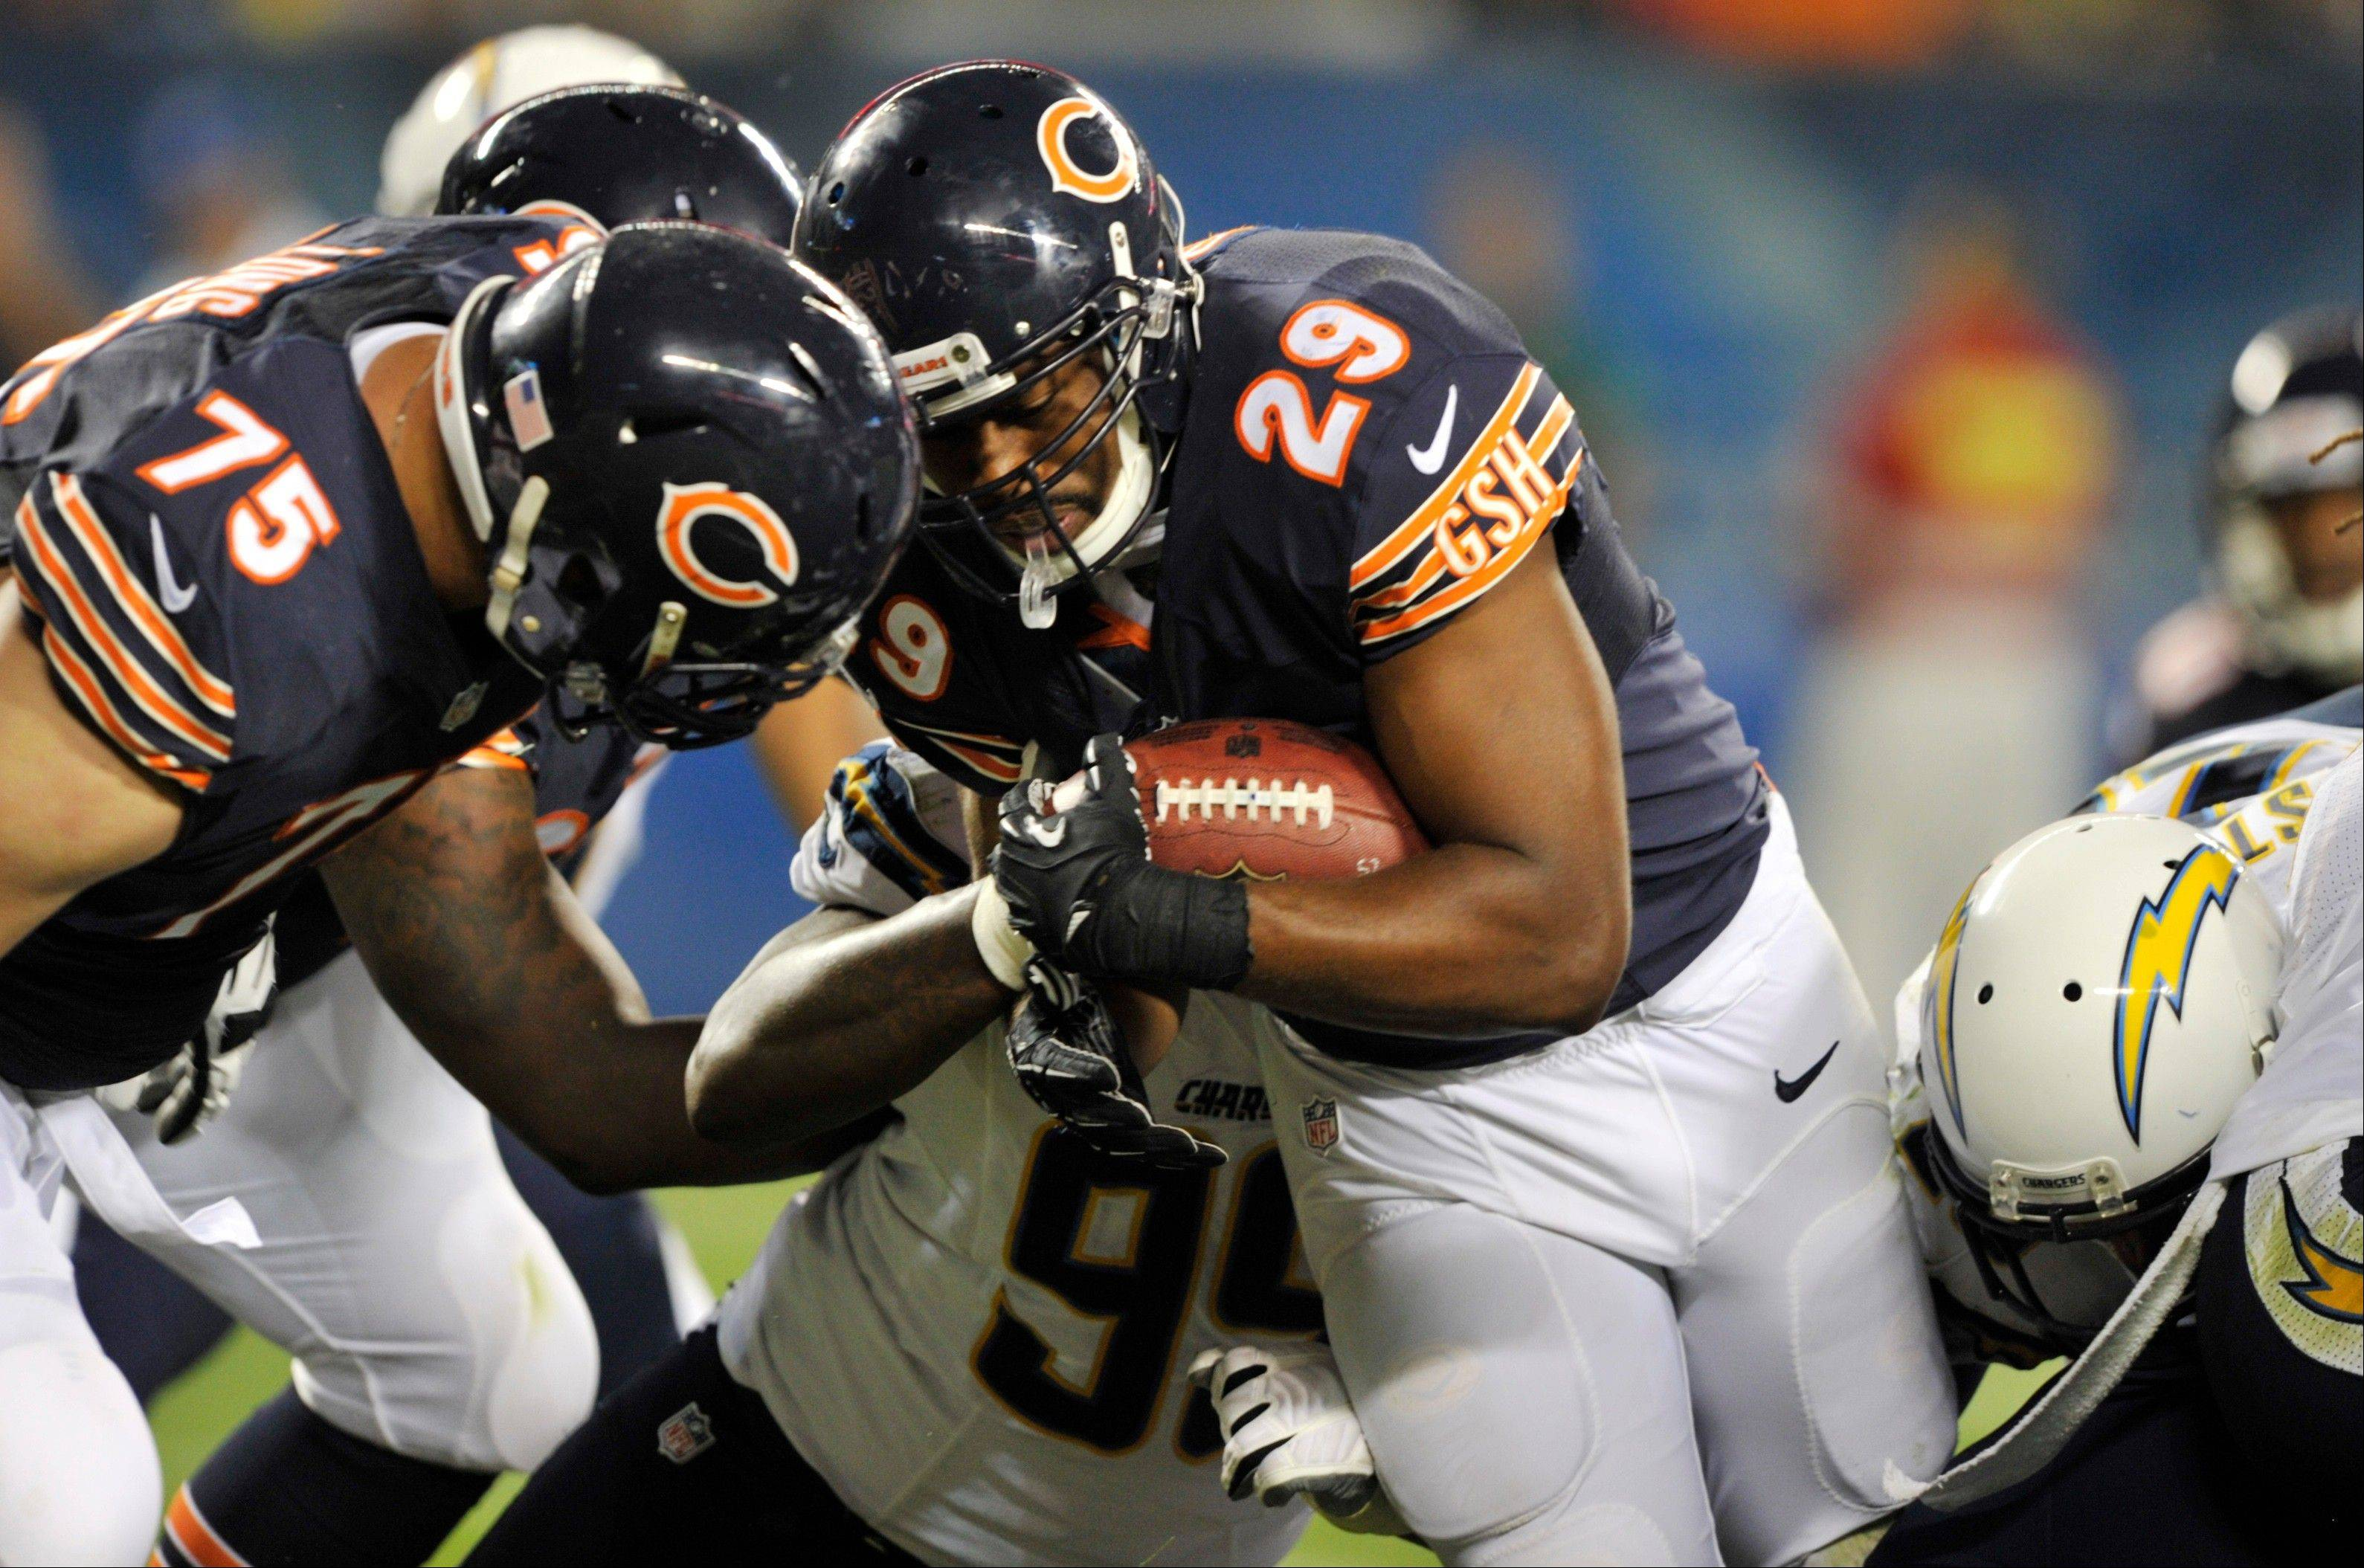 Bears running back Michael Bush (29) runs for a touchdown during the second half of the preseason NFL game against the San Diego Chargers Thursday in Chicago.